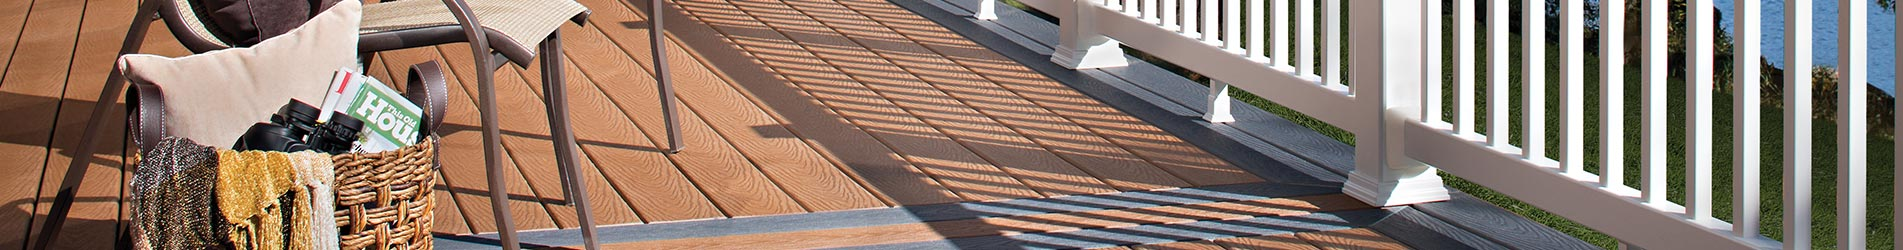 Deck Grand Rapids Montell Construction